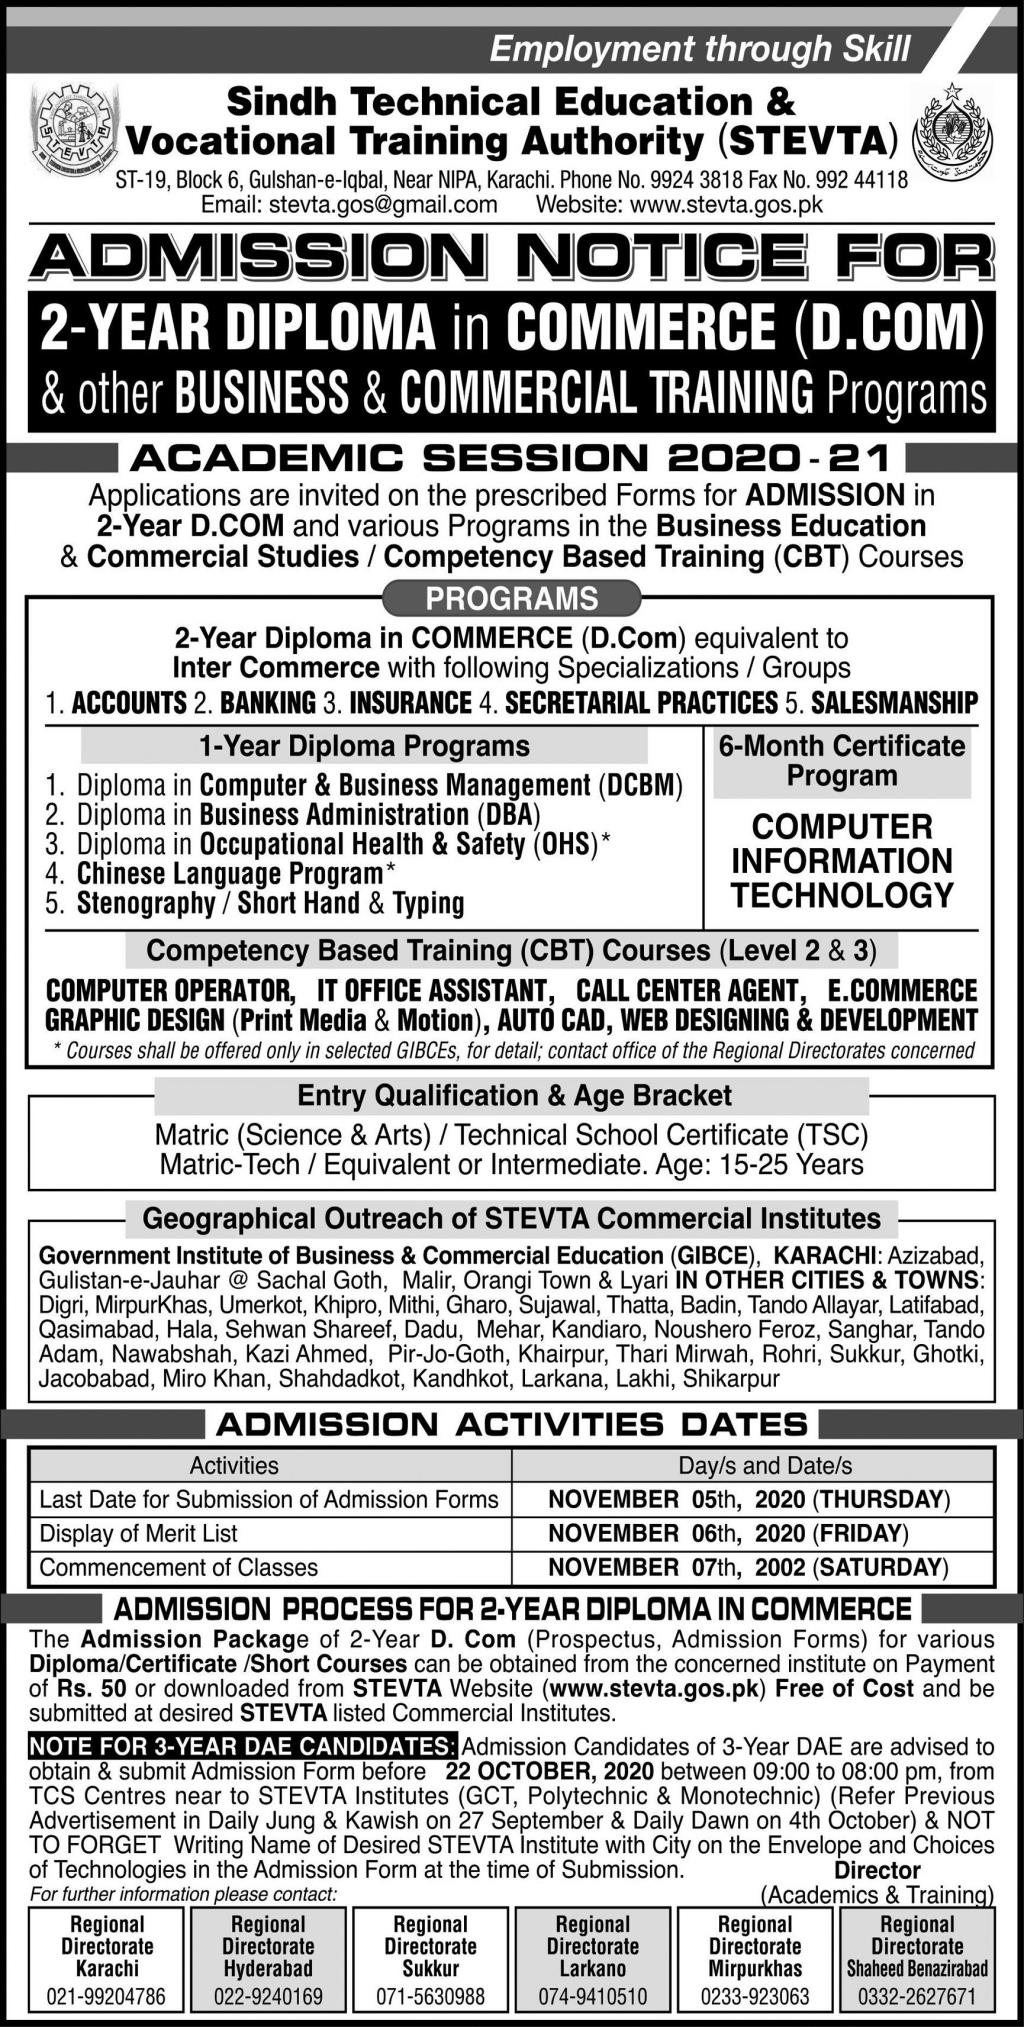 Sindh Technical Education & Vocational Training Authority (STEVTA) admission